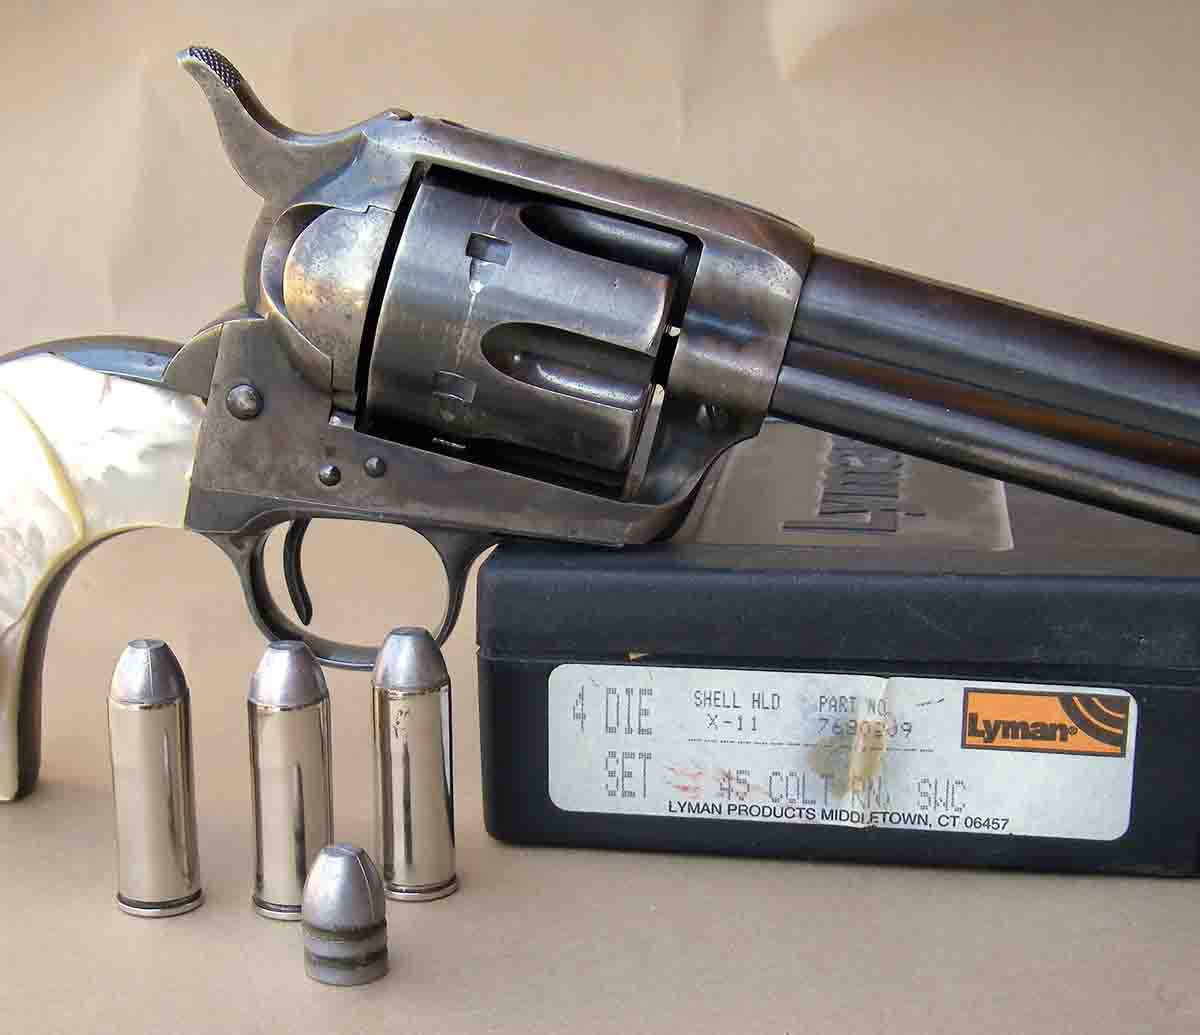 .45 Colt factory ammunition can be easily duplicated through handloading.